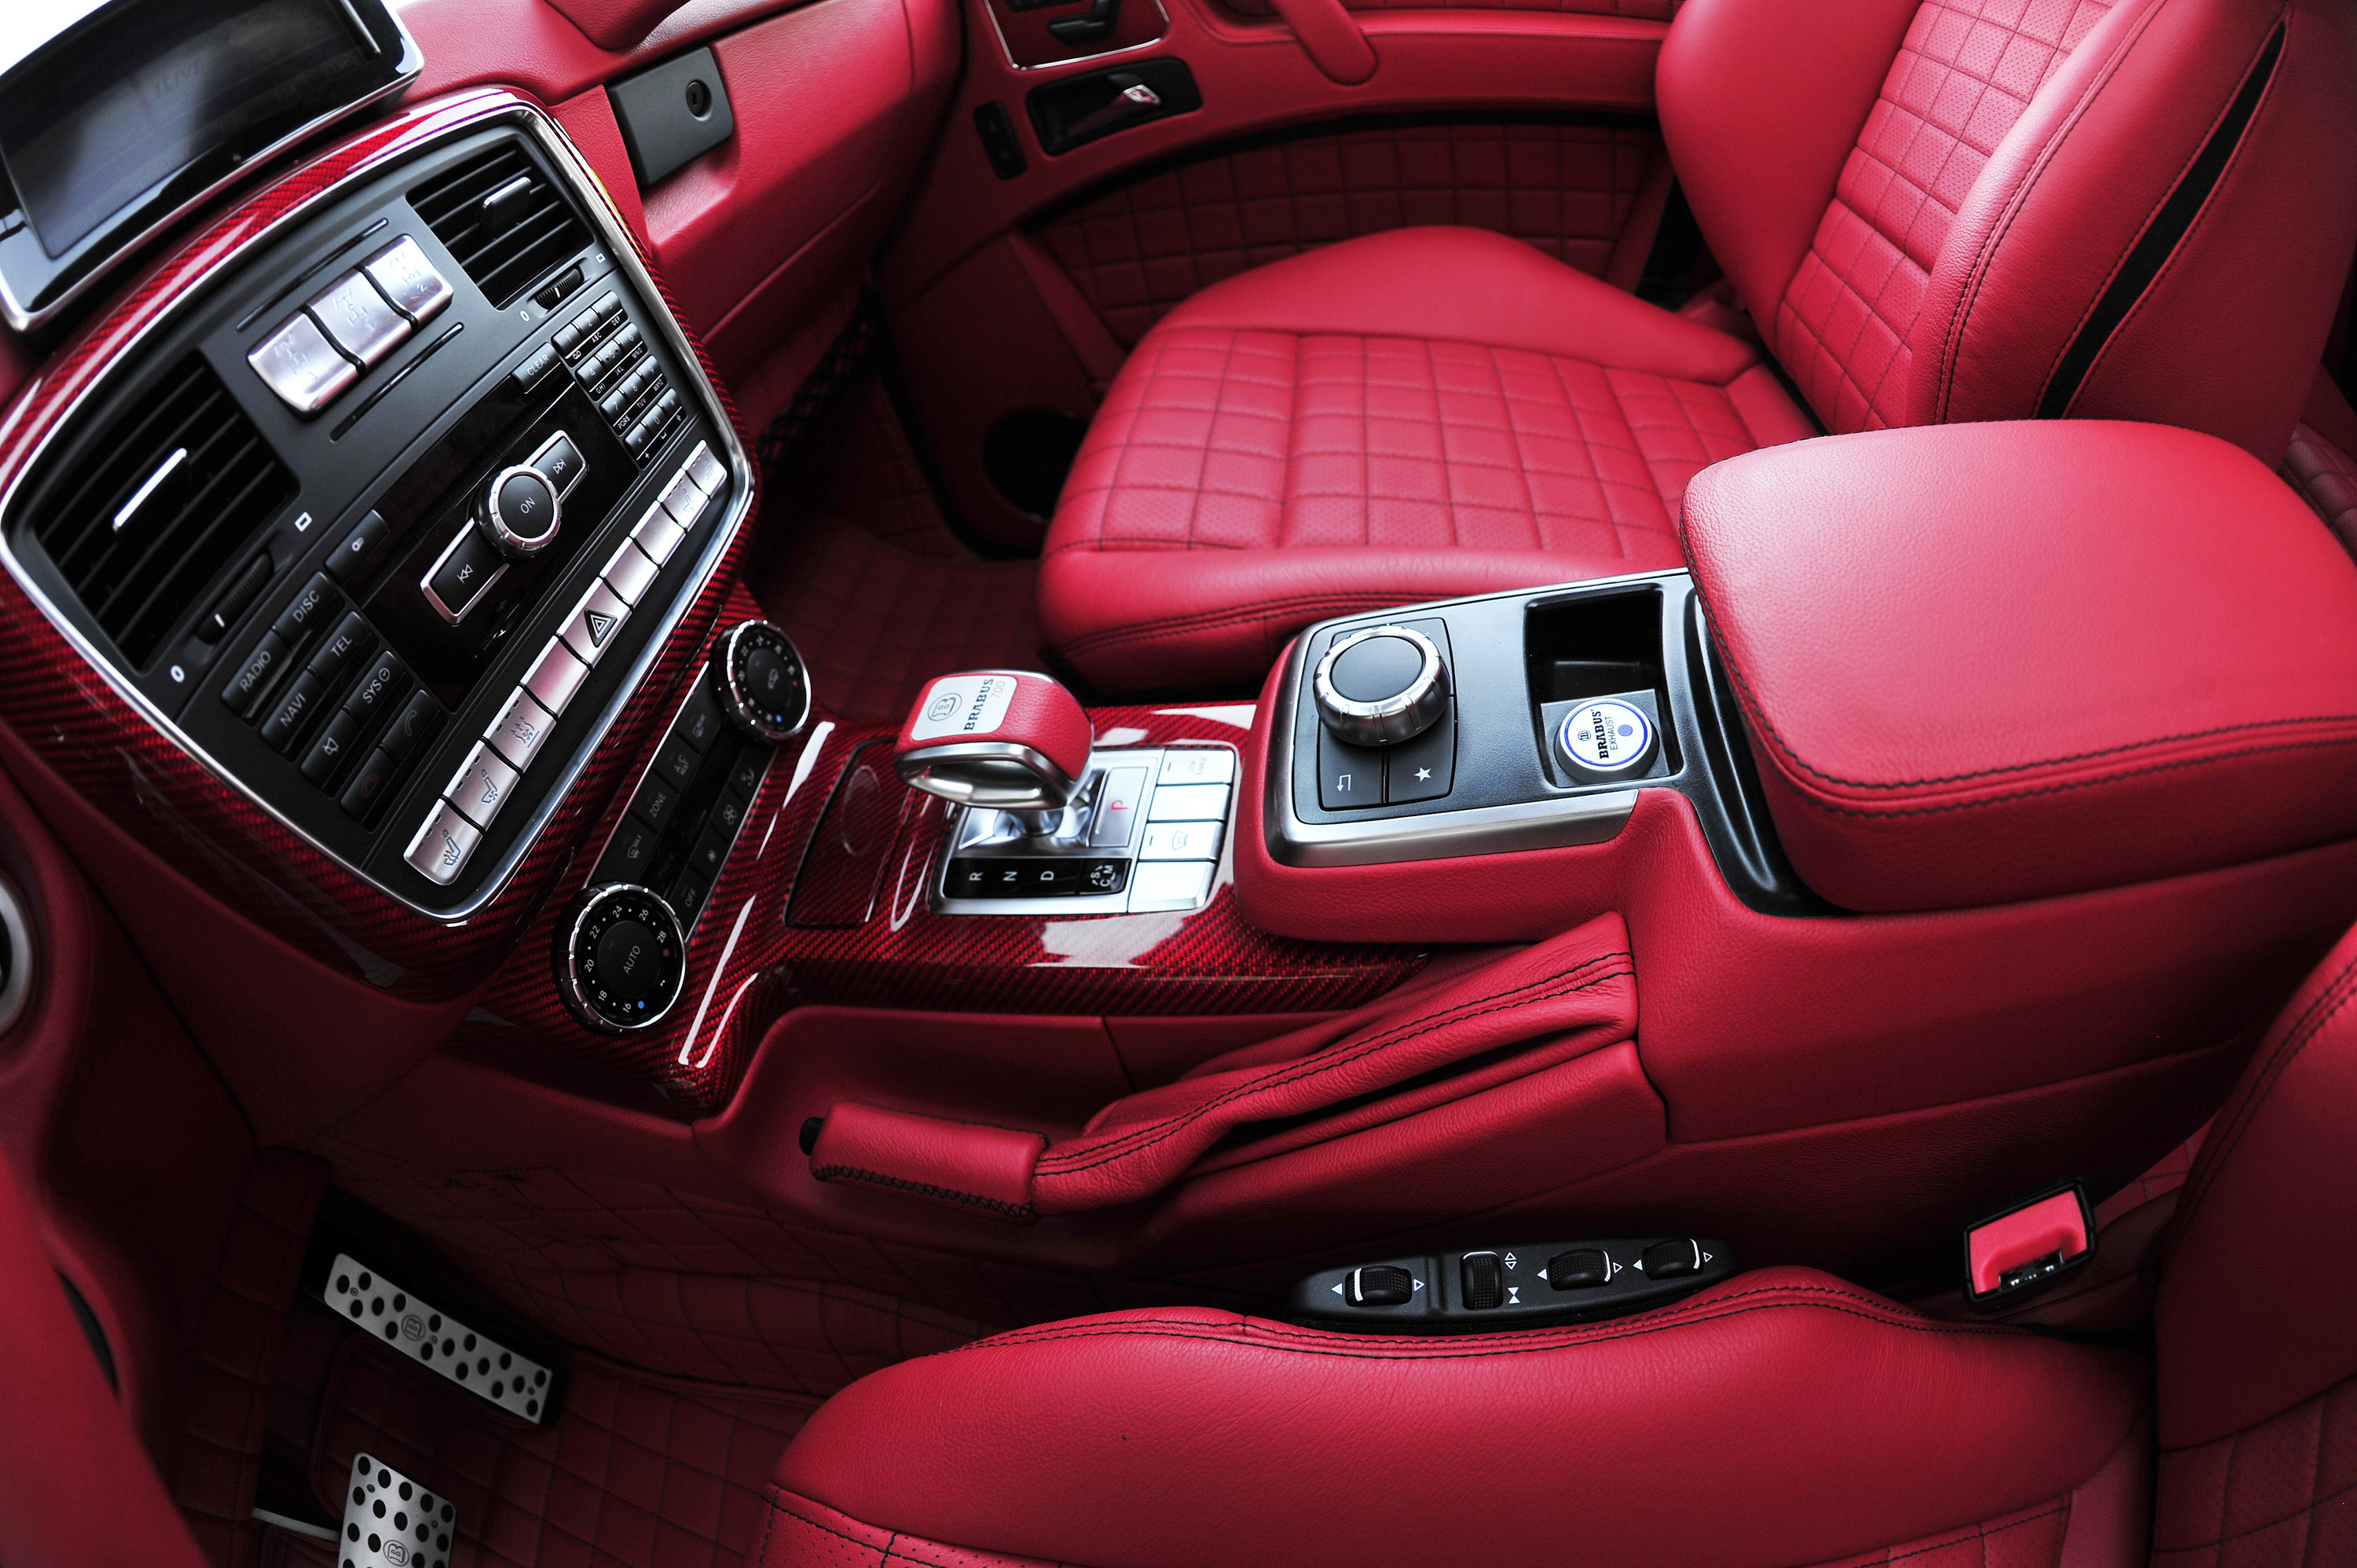 mercedes g class 6x6 interior images galleries with a bite. Black Bedroom Furniture Sets. Home Design Ideas